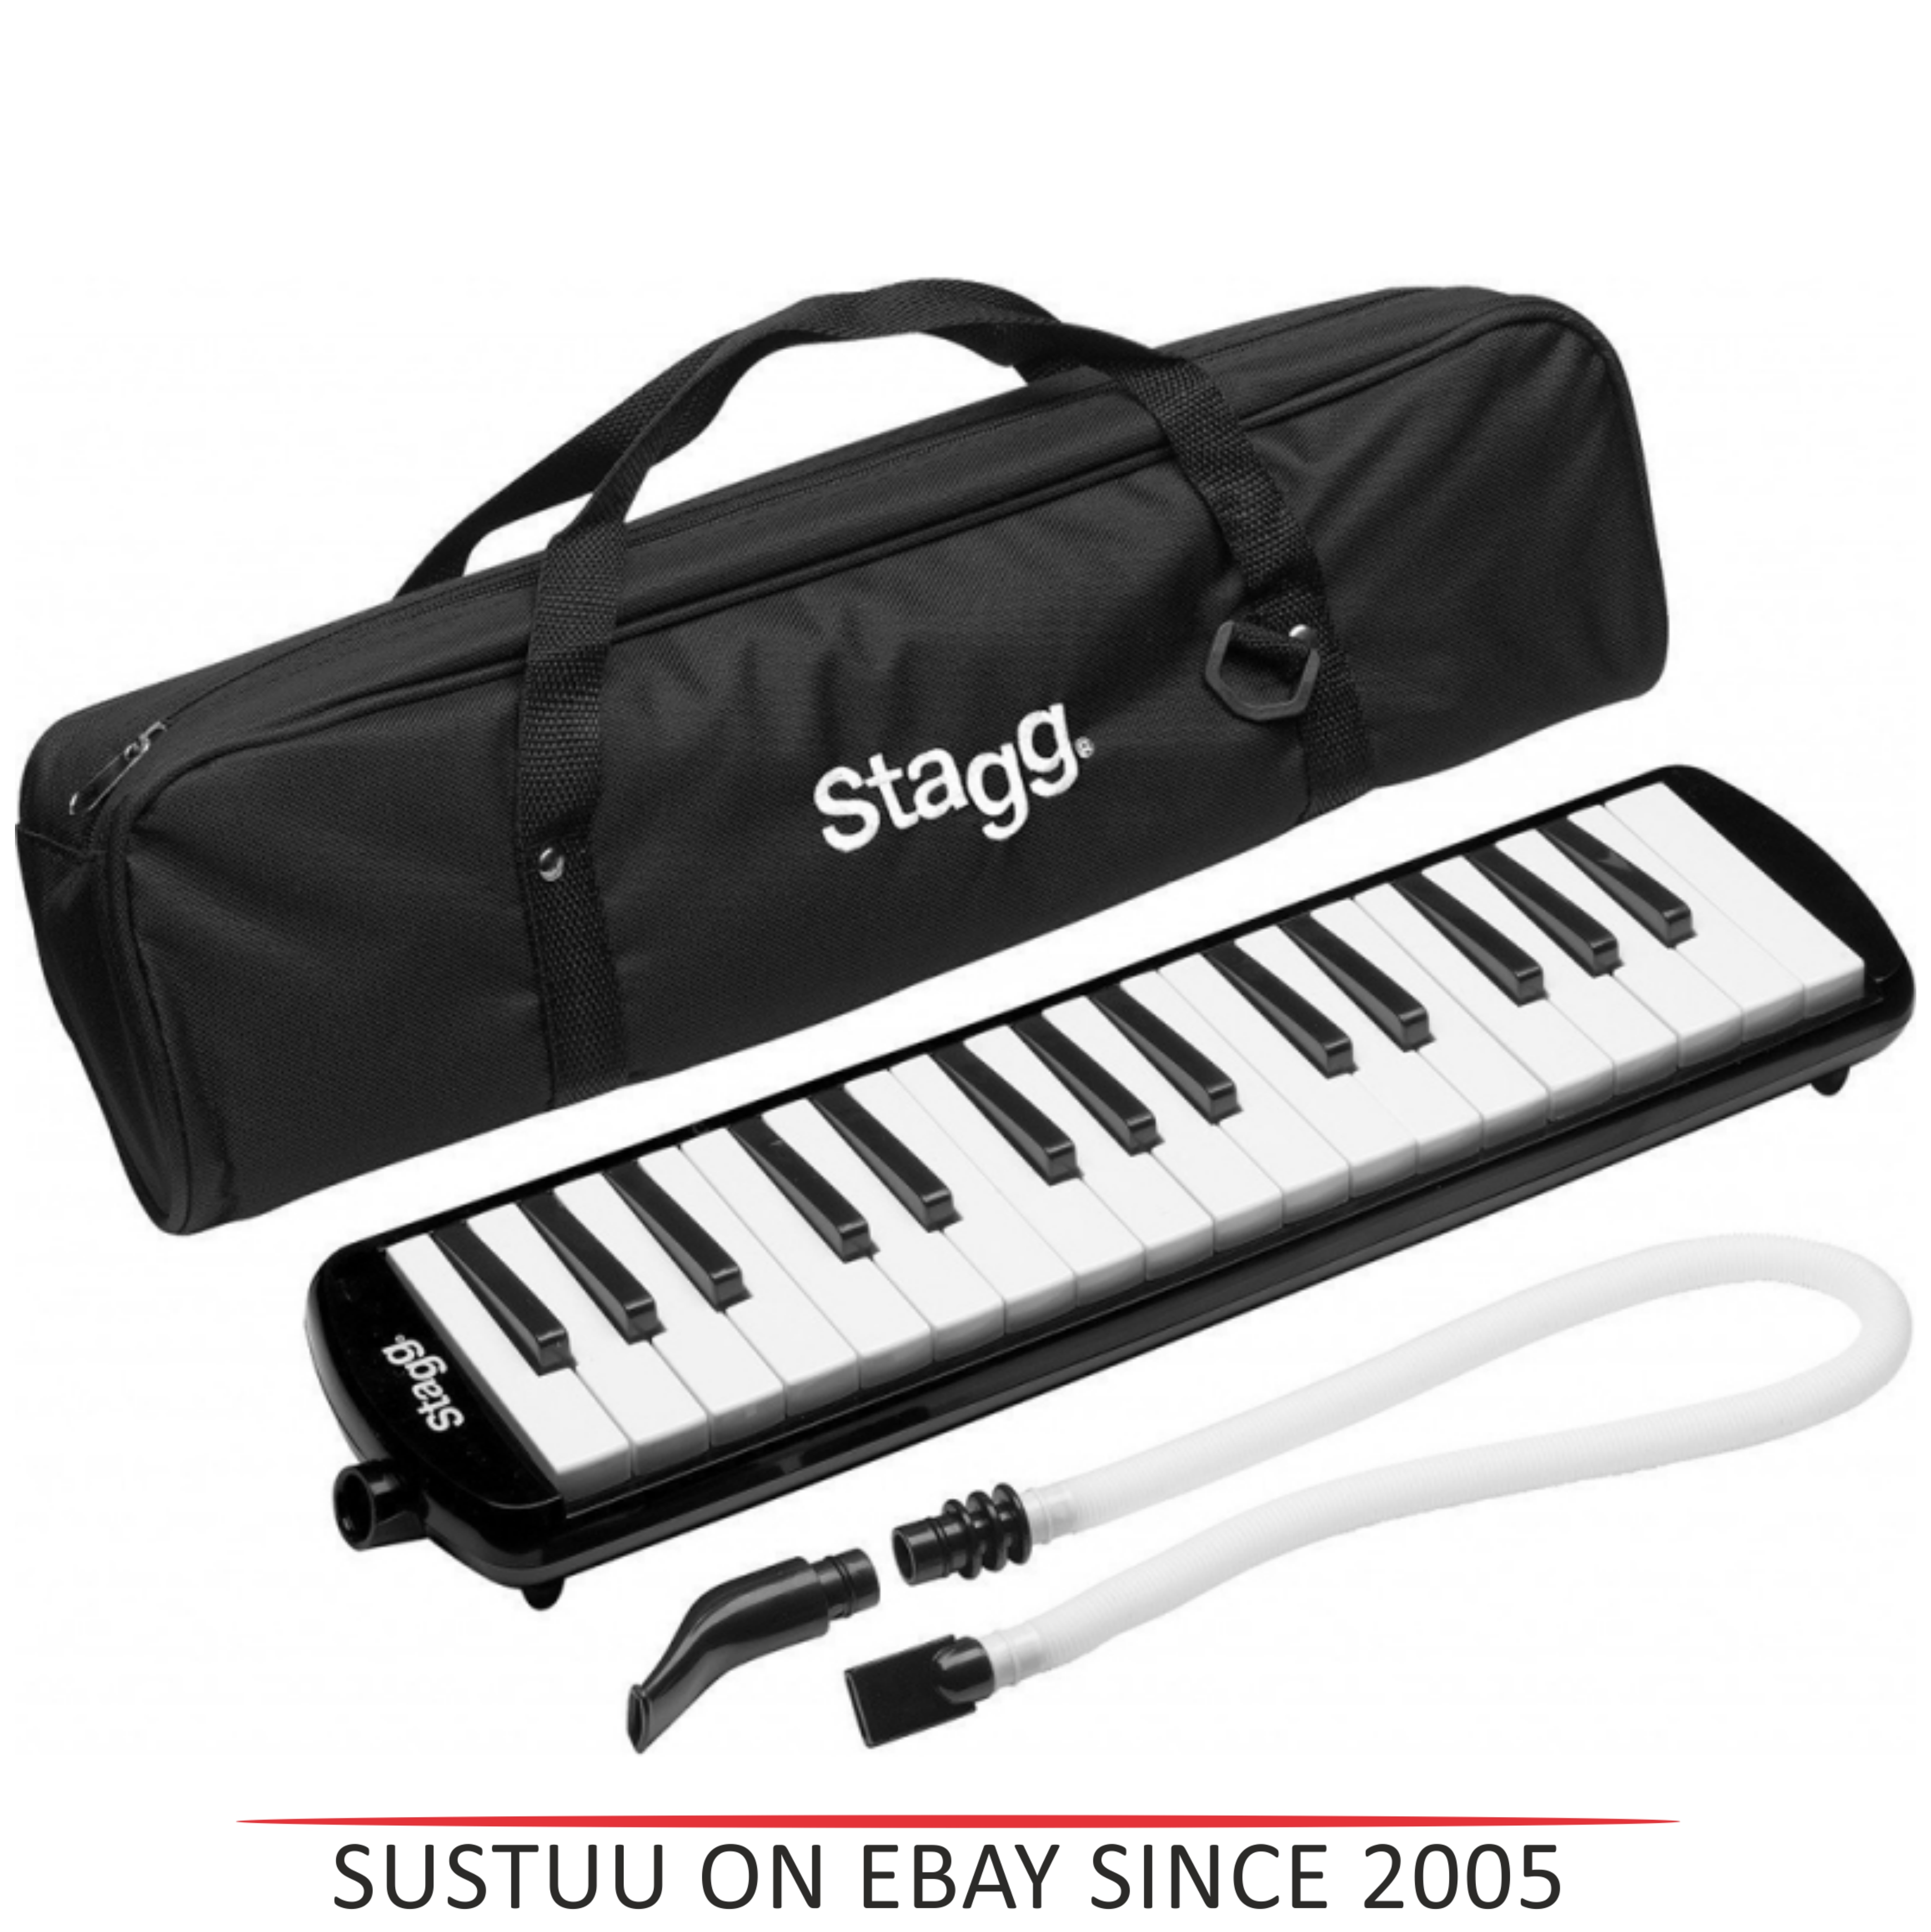 Stagg Melodica Black Music Reed 32 Keys Mouthpiece Piano Keyboard  - MELOSTA32BK